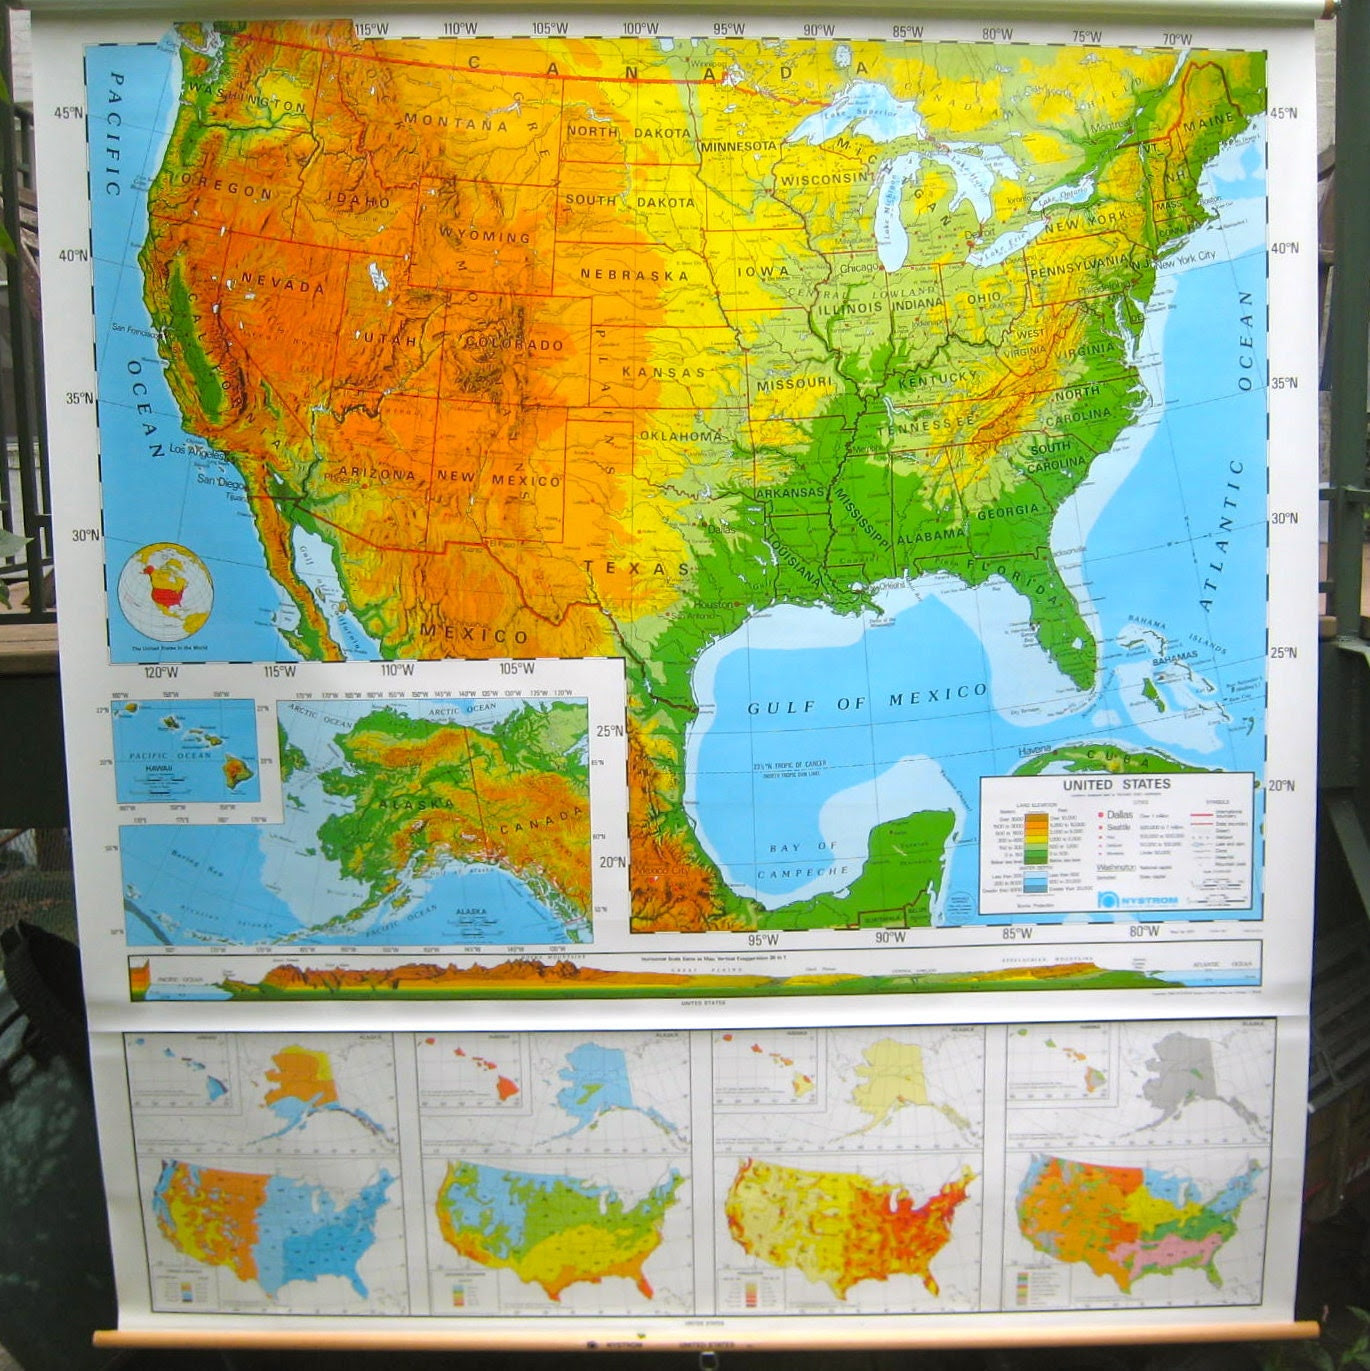 Vintage Pull Down School Wall Map of the U.S.